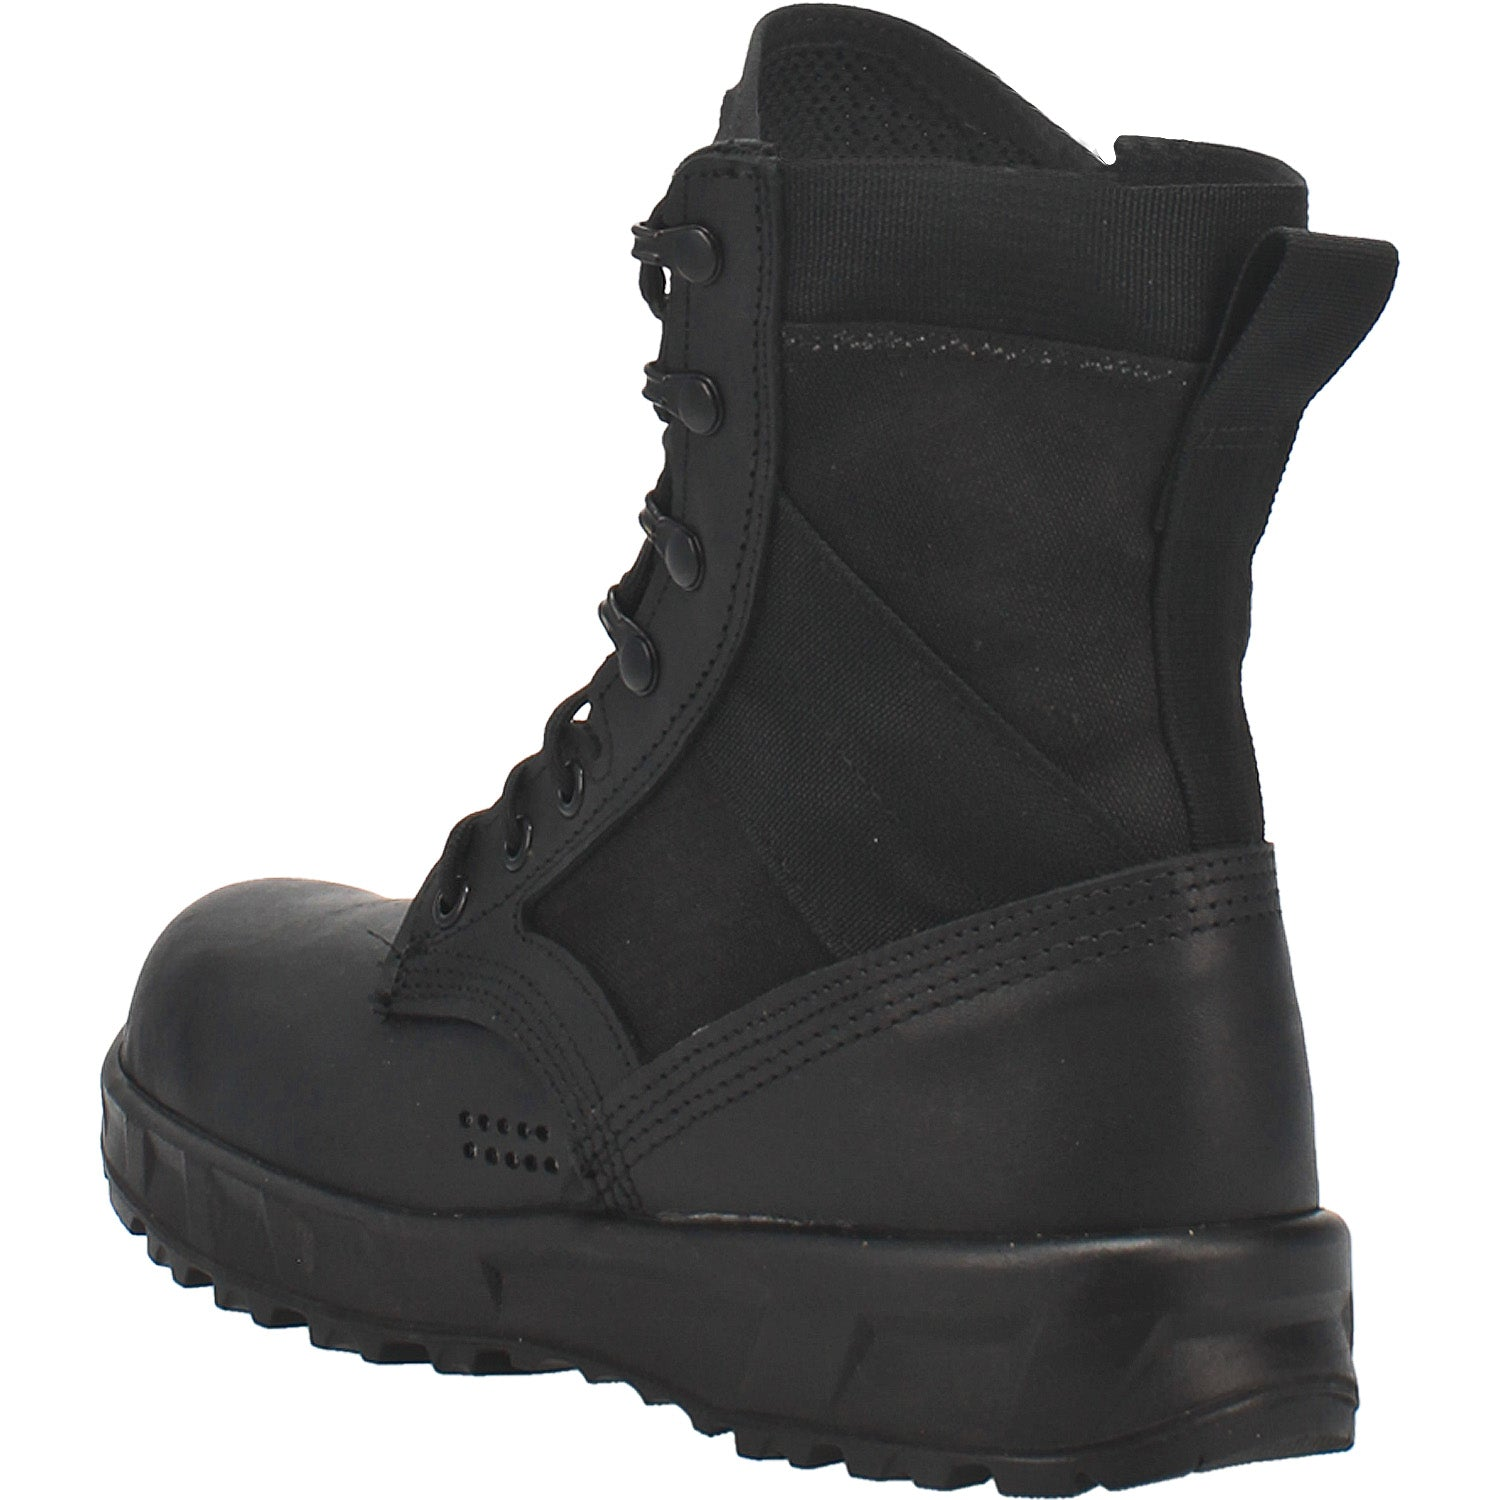 T2 Ultra Light Hot Weather Combat Boot 27986663211050